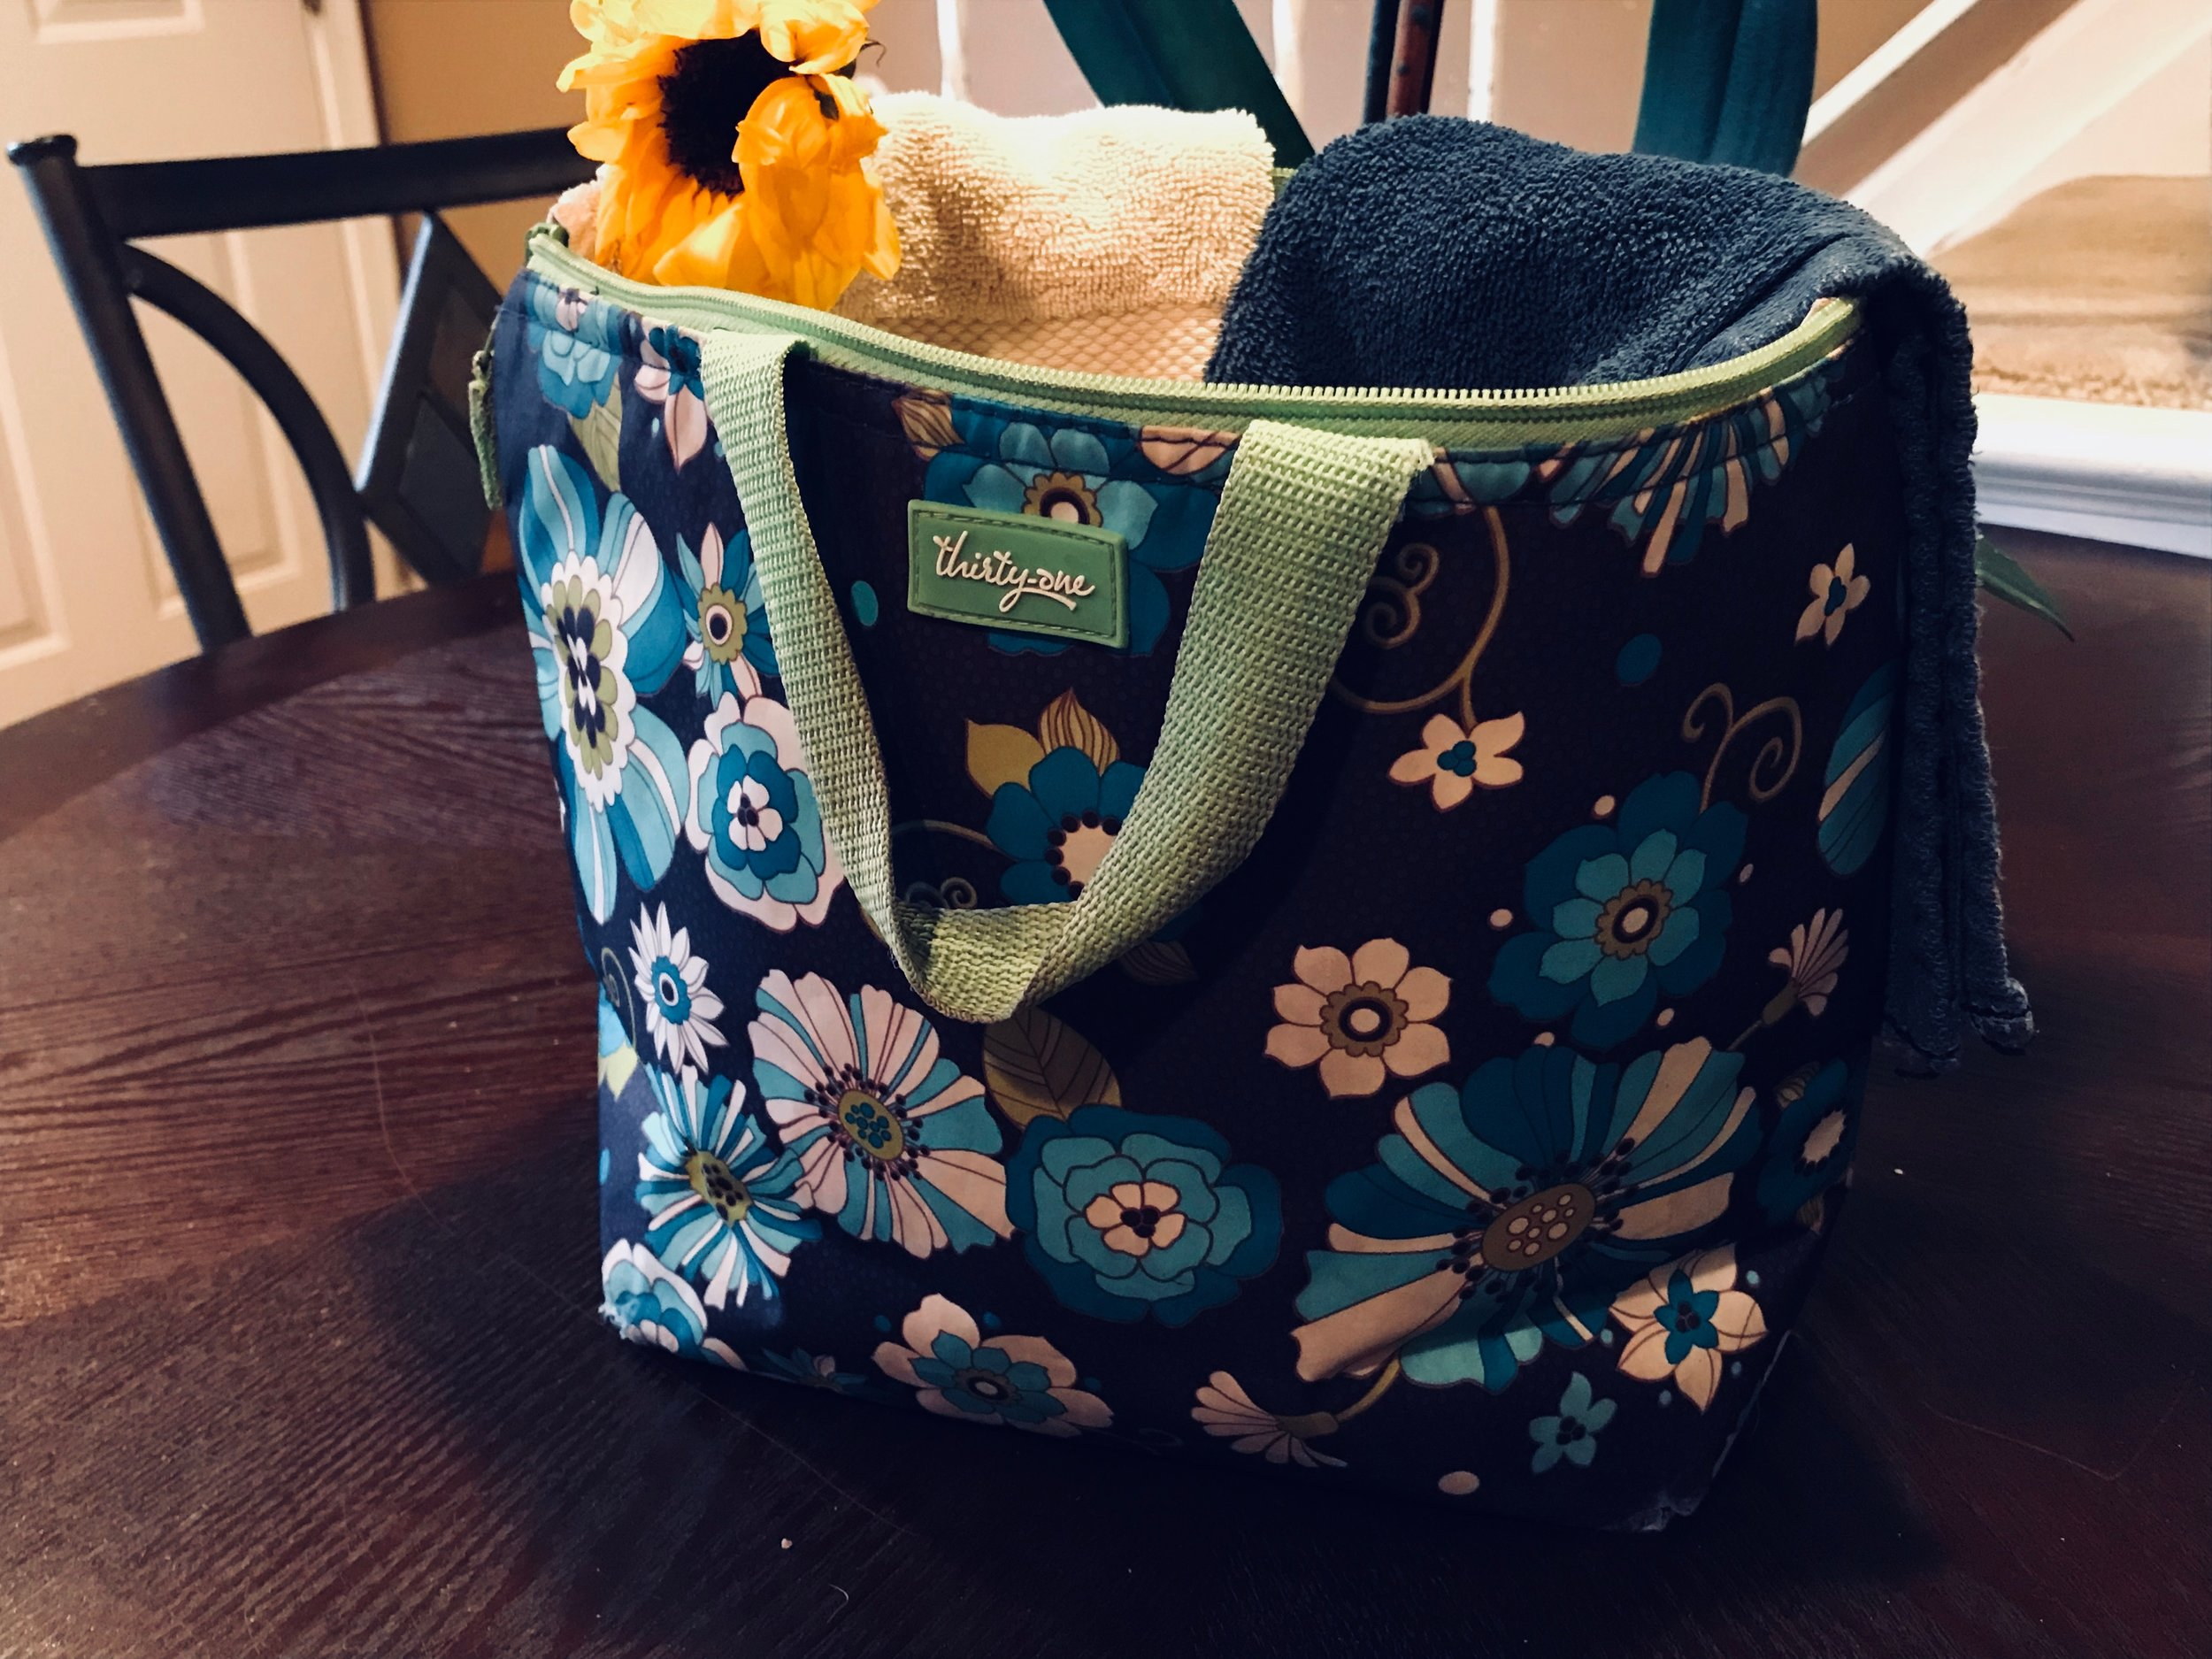 Fill an insulated tote bag with ice and wet cloths. Use the icy cold rags to cool off during summer outings.